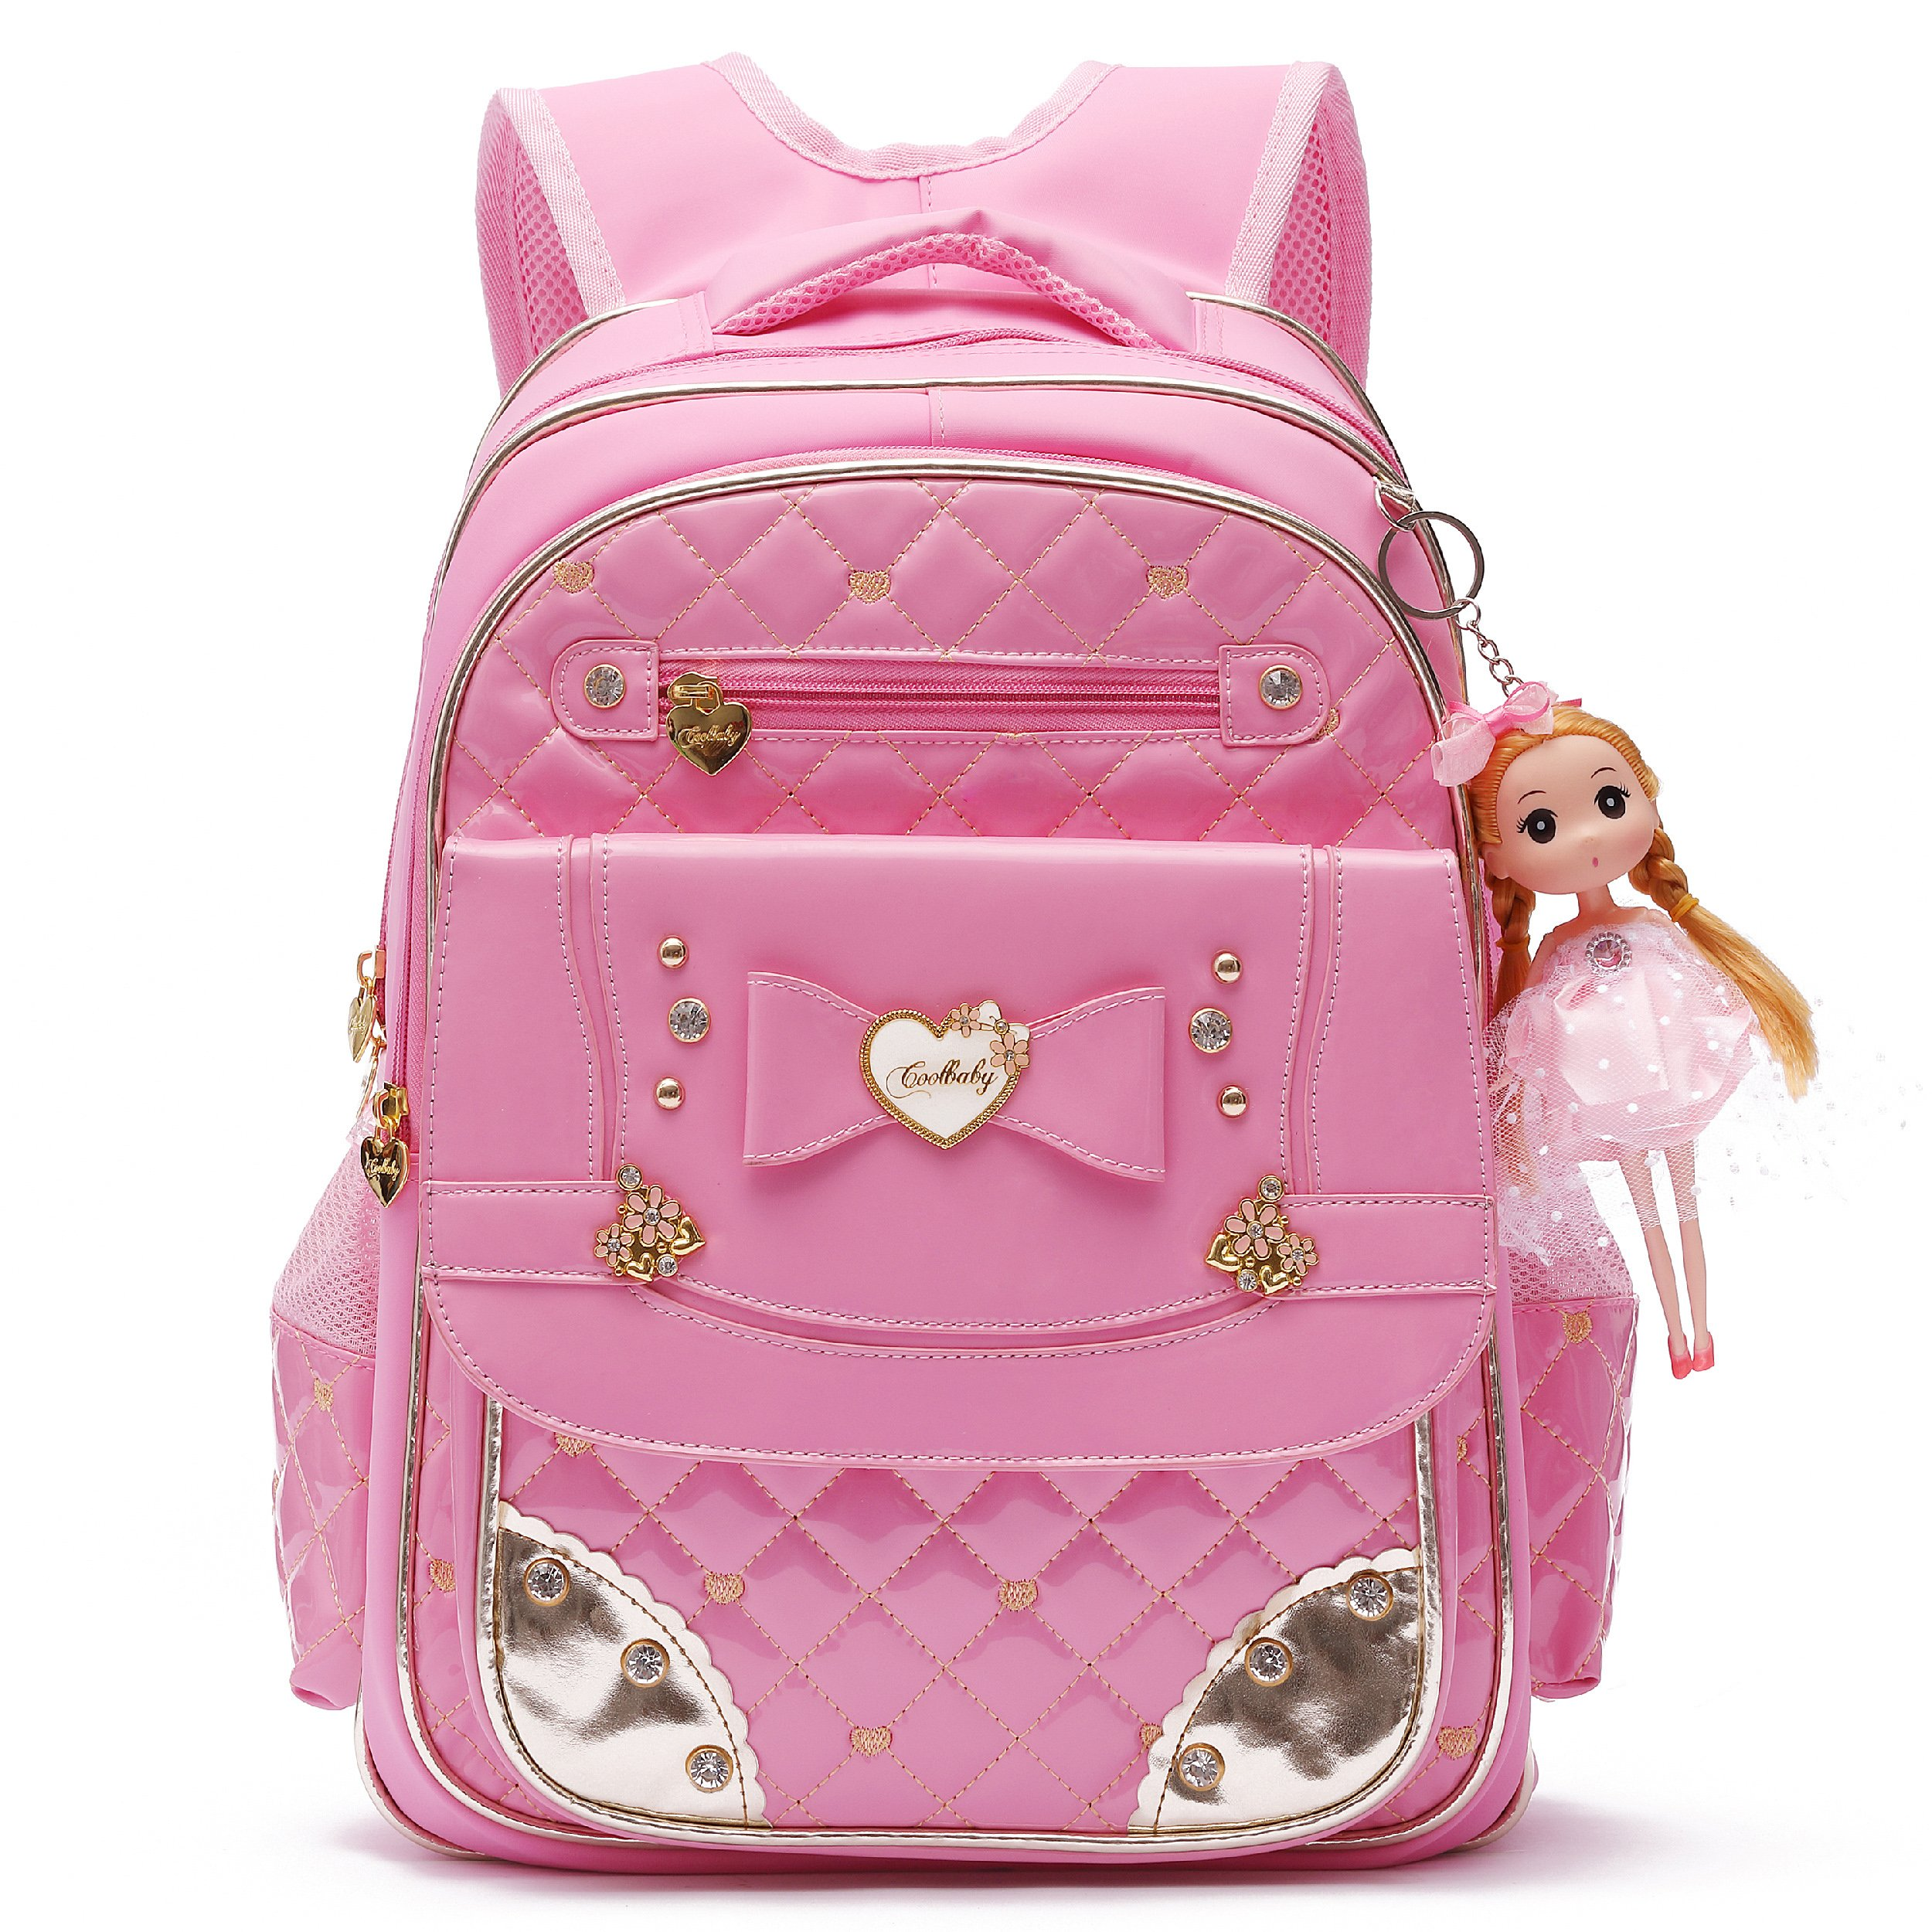 Ali Victory Waterproof PU Leather Kids Backpack Cute School Bookbag for Girls (Small, Pink)